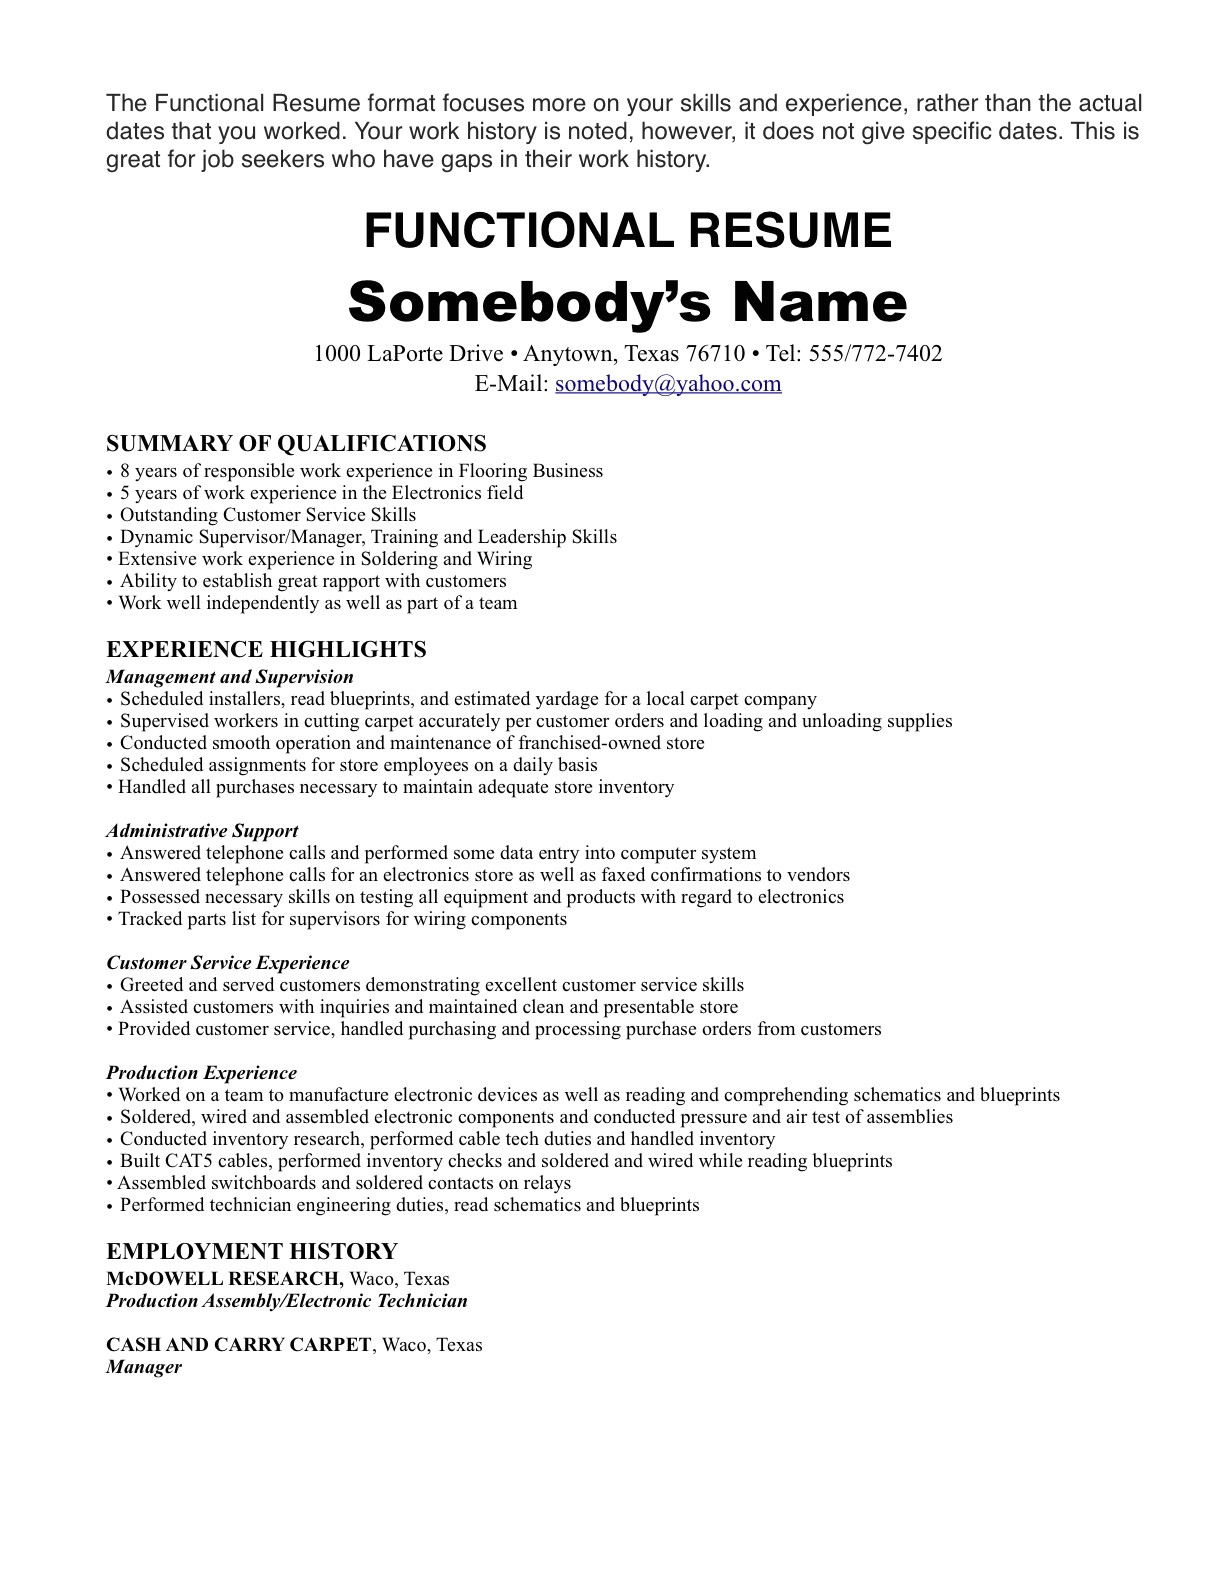 sample resume with one job experience